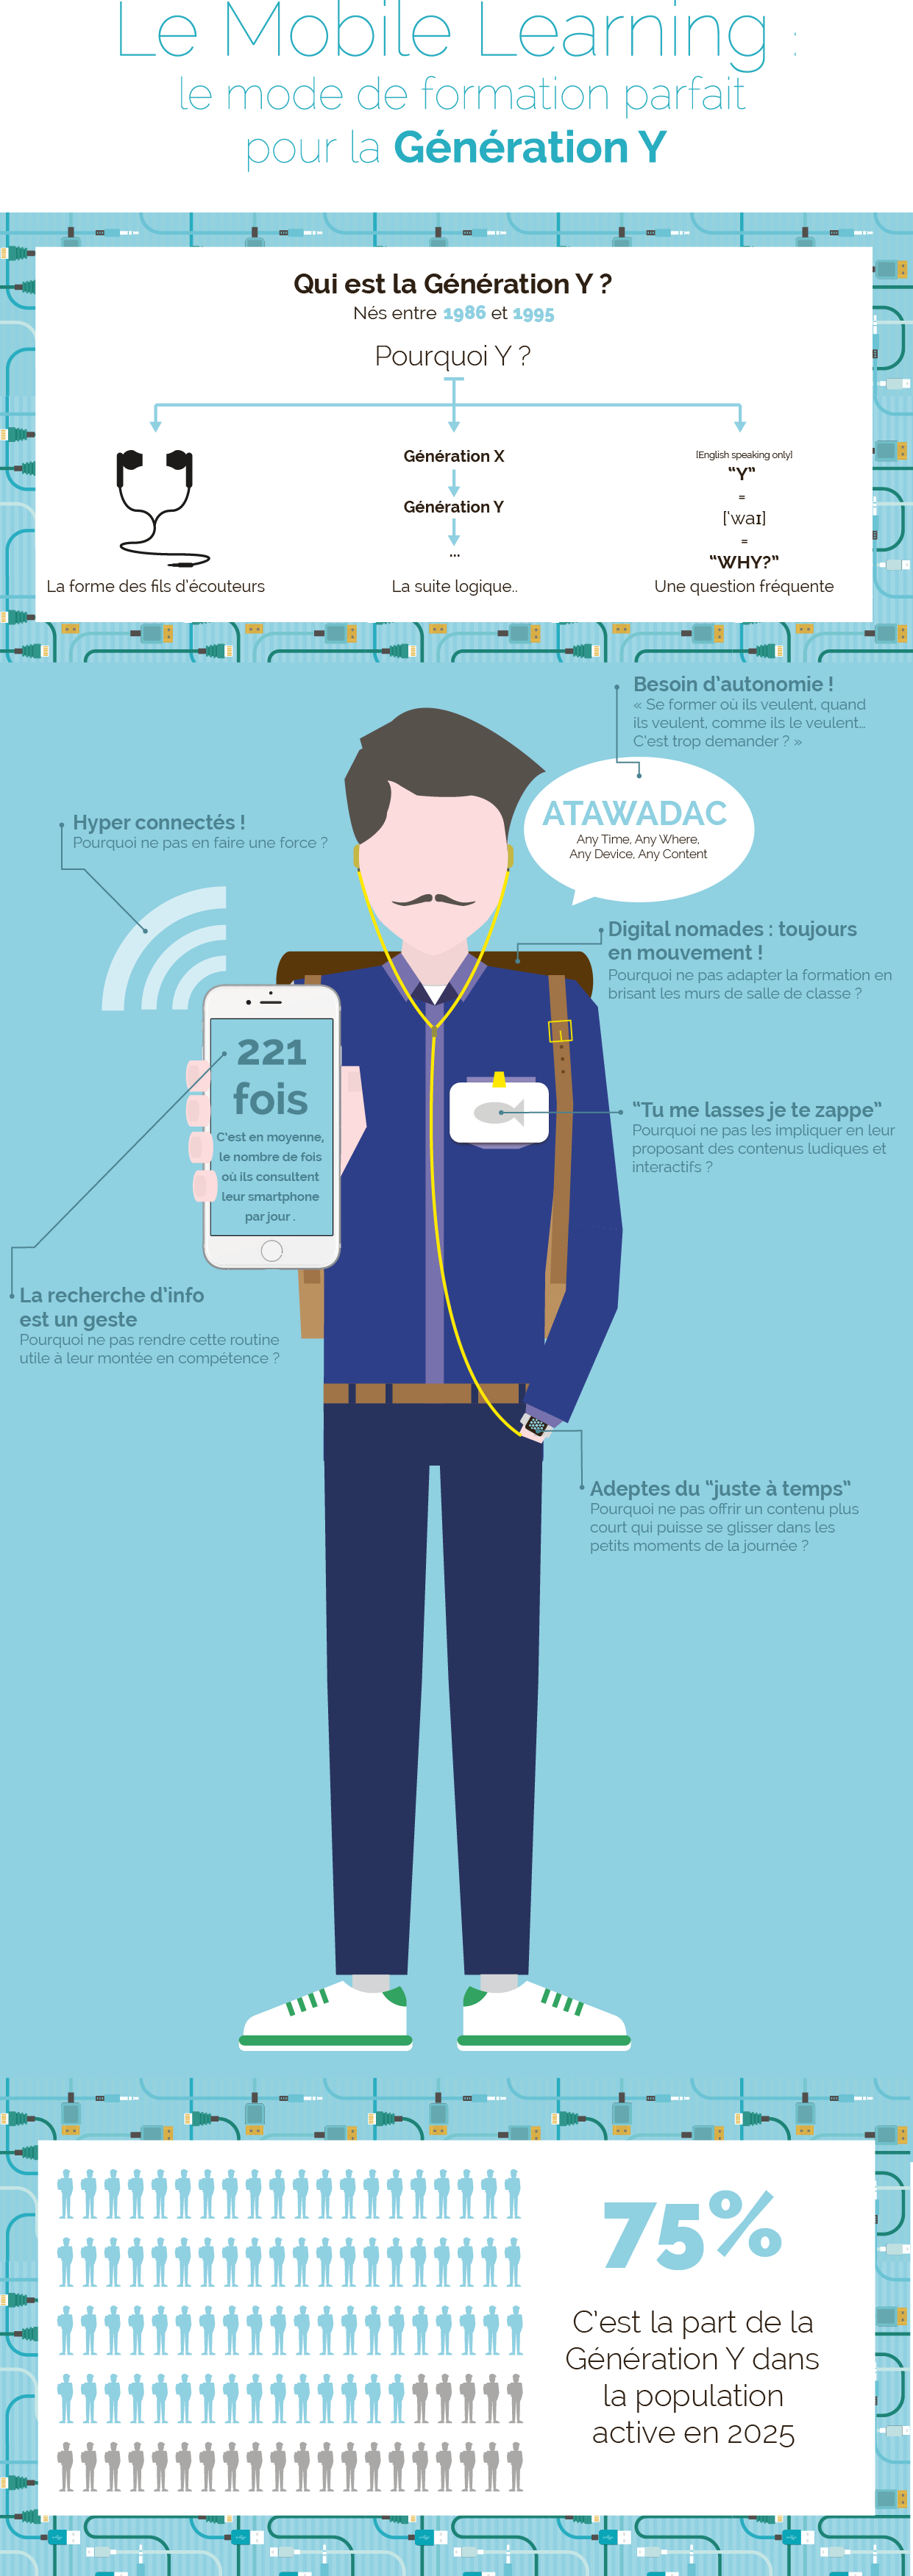 Infographie-Mobile-Learning-et-Generation-Y